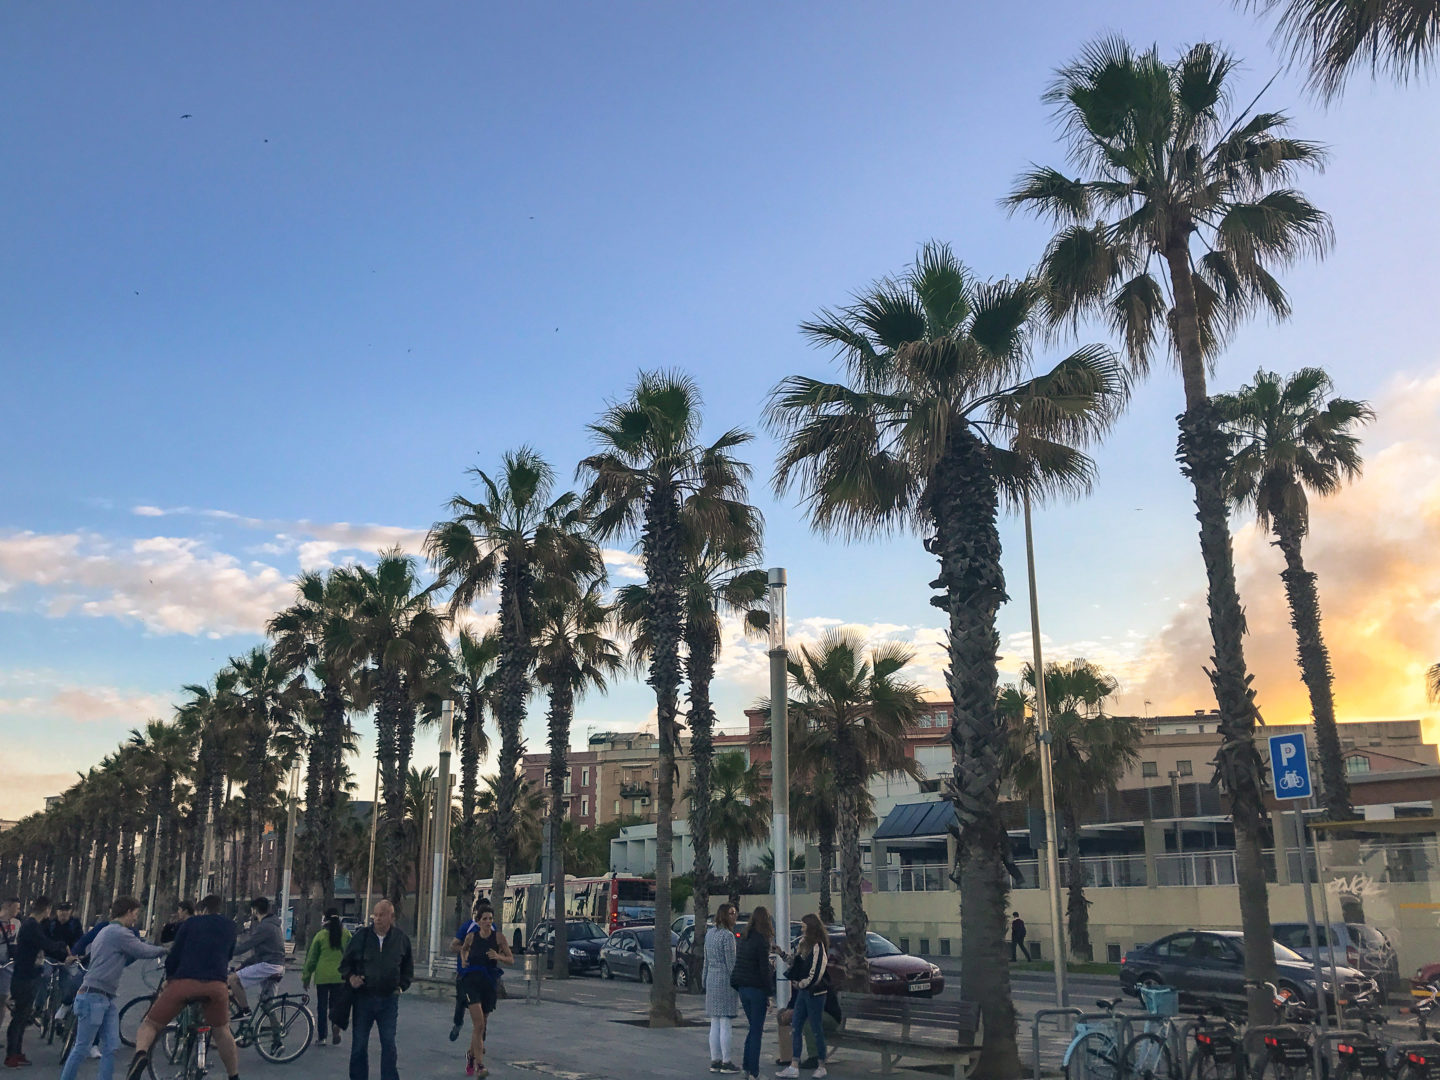 Quick Barcelona Travel Itinerary | What to See & Where to Eat | Playa de la Barceloneta